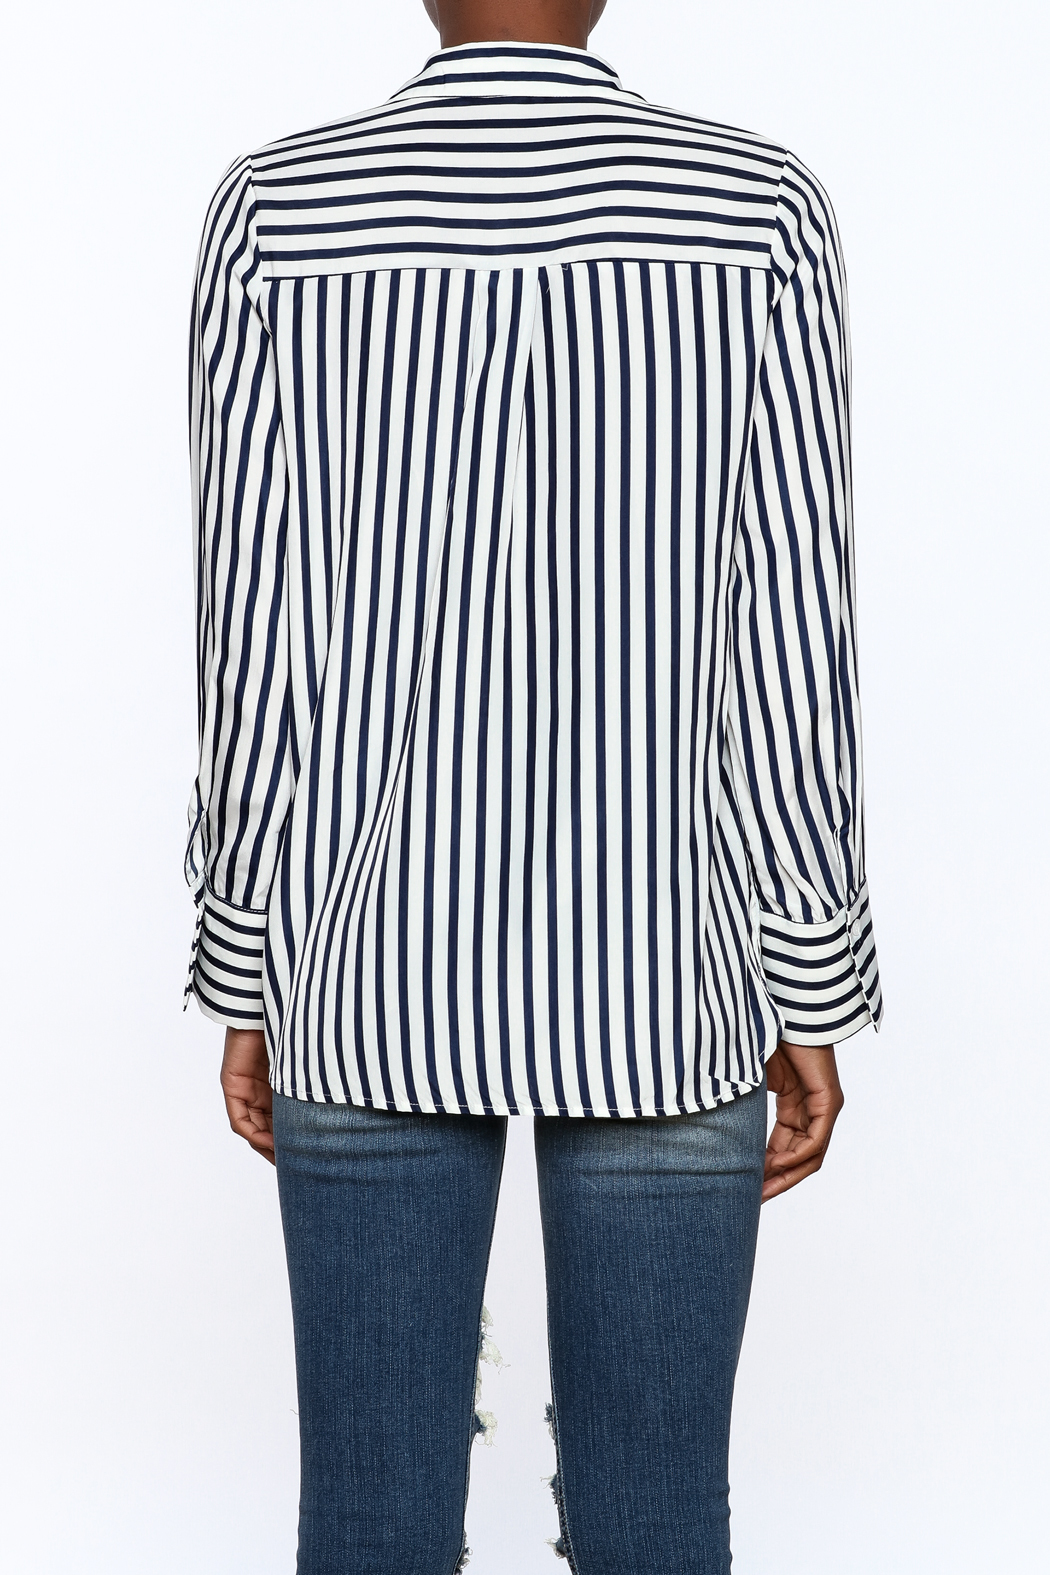 essue Stripe Button-Down Top - Back Cropped Image